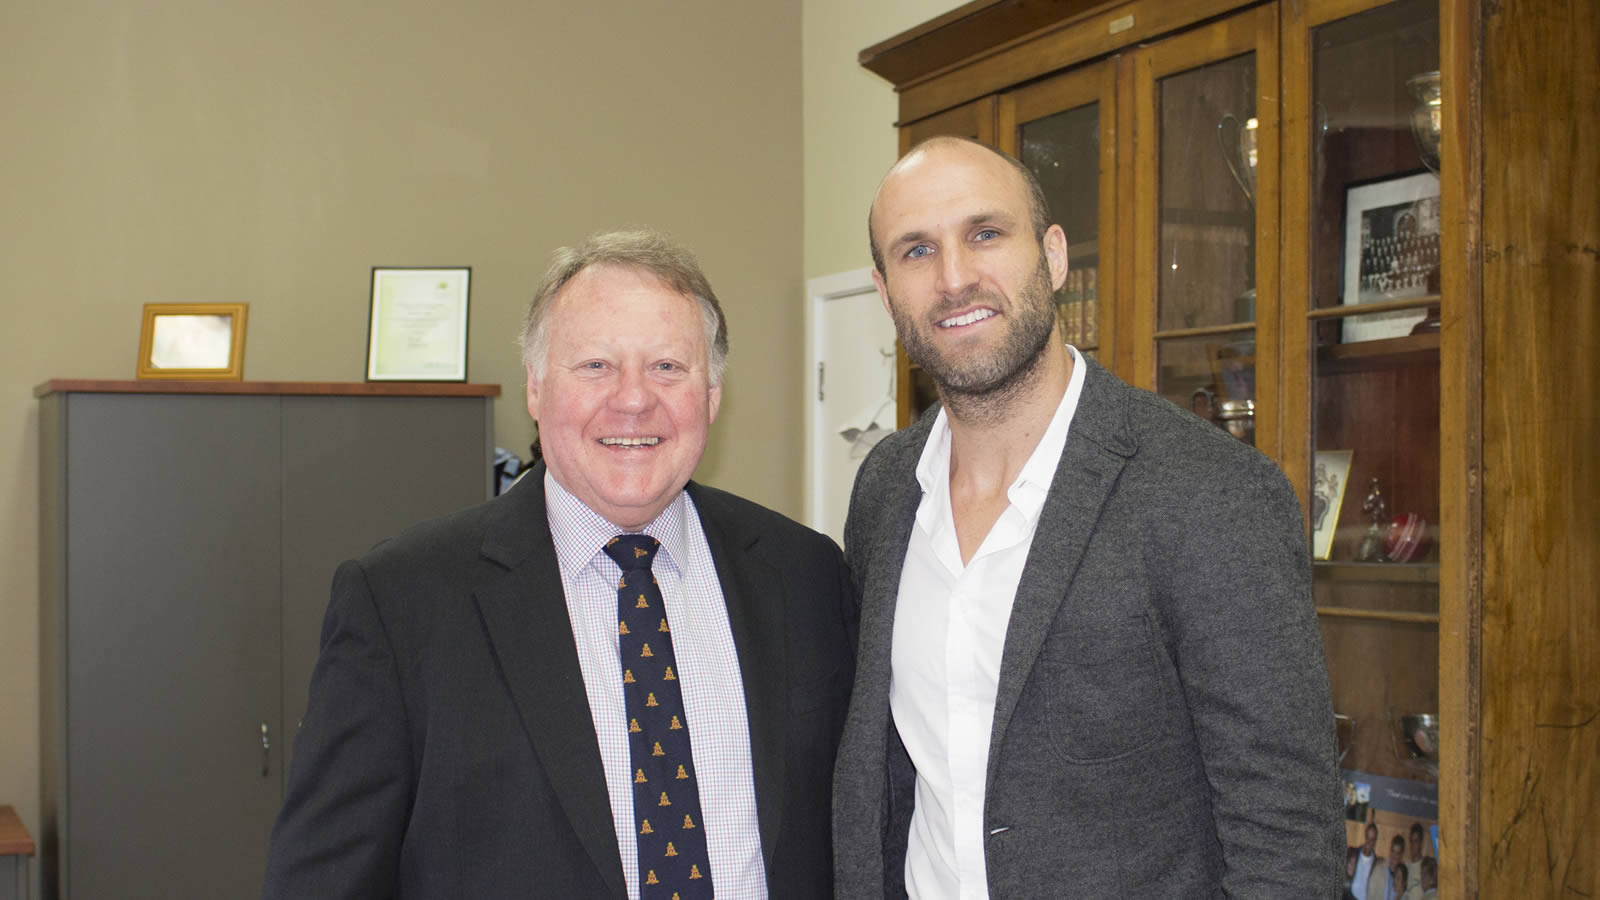 Mr Warwick Dean, Headmaster, with dual Brownlow medallist, Chris Judd (large)